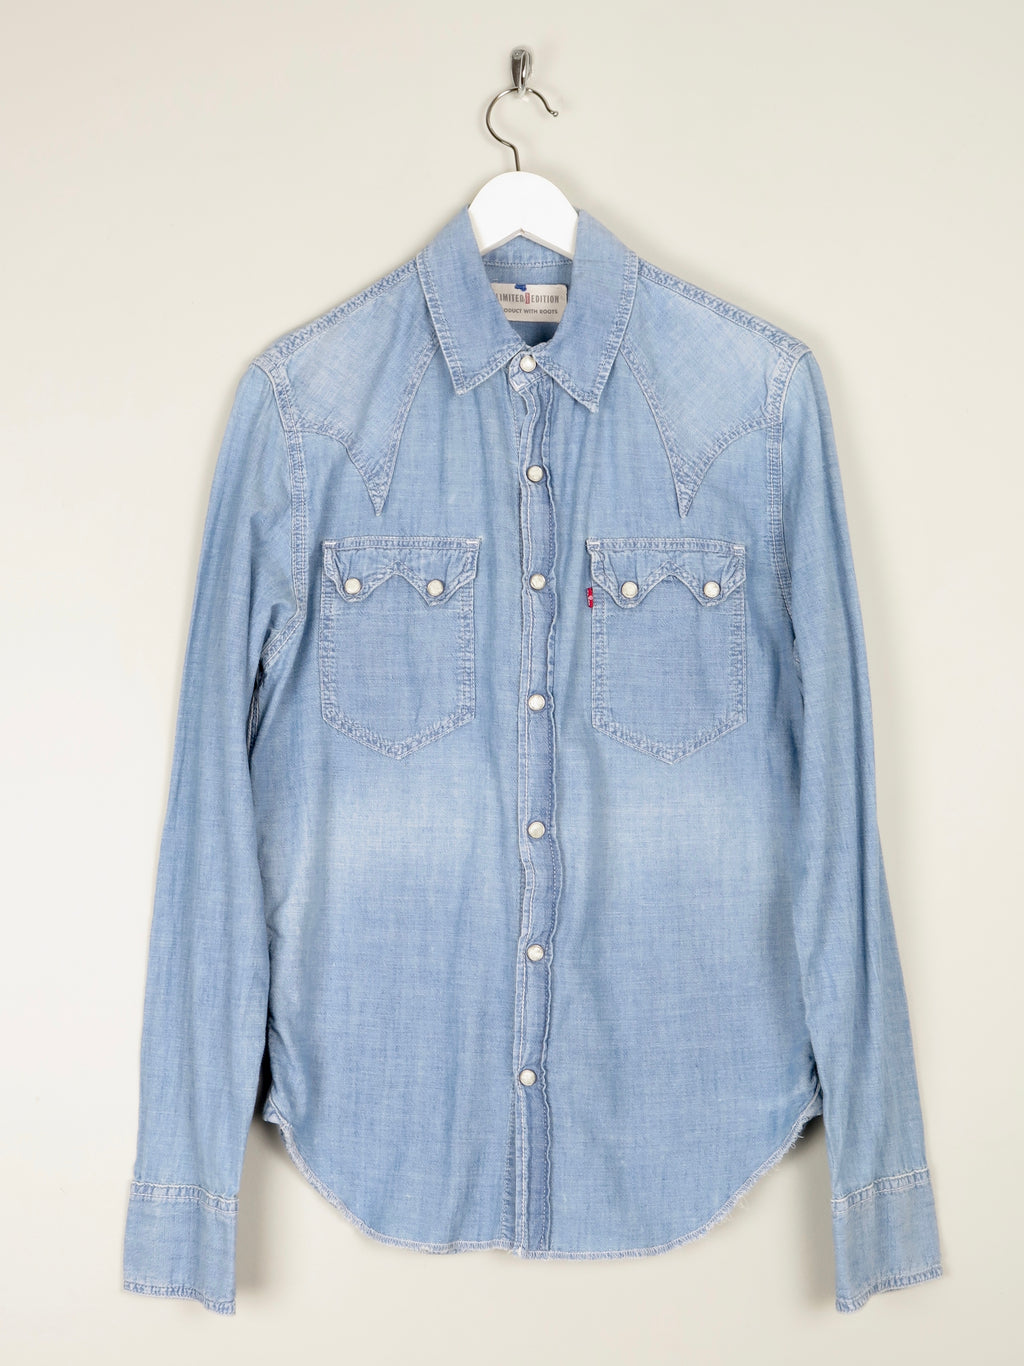 Mens Levis Limited Edition Denim Shirt With Print On the Back S